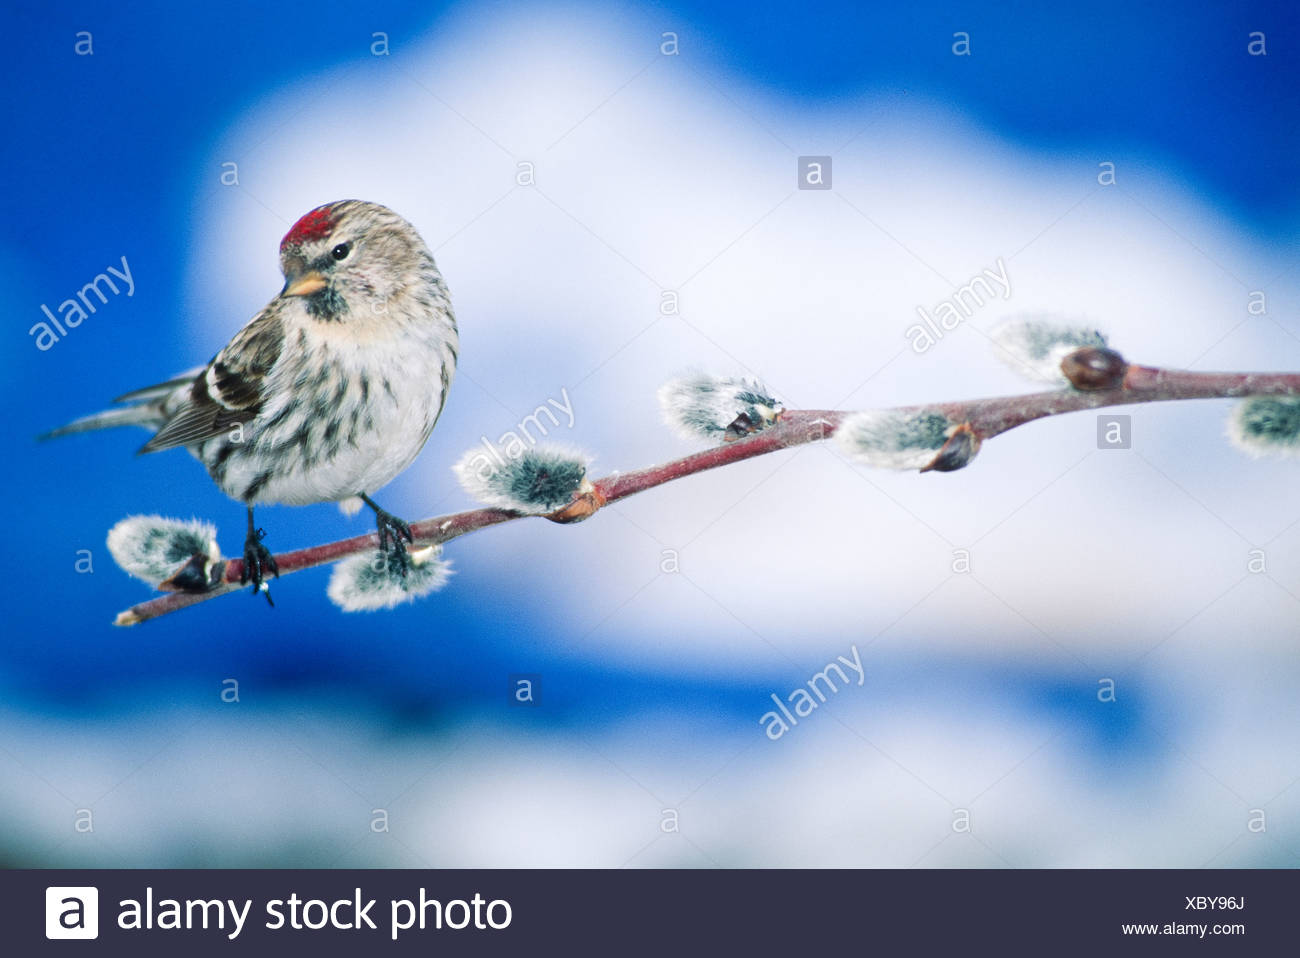 Common Redpoll. The Redpolls are a group of small passerine birds in the finch family Fringillidae which have characteristic red markings on their hea - Stock Image